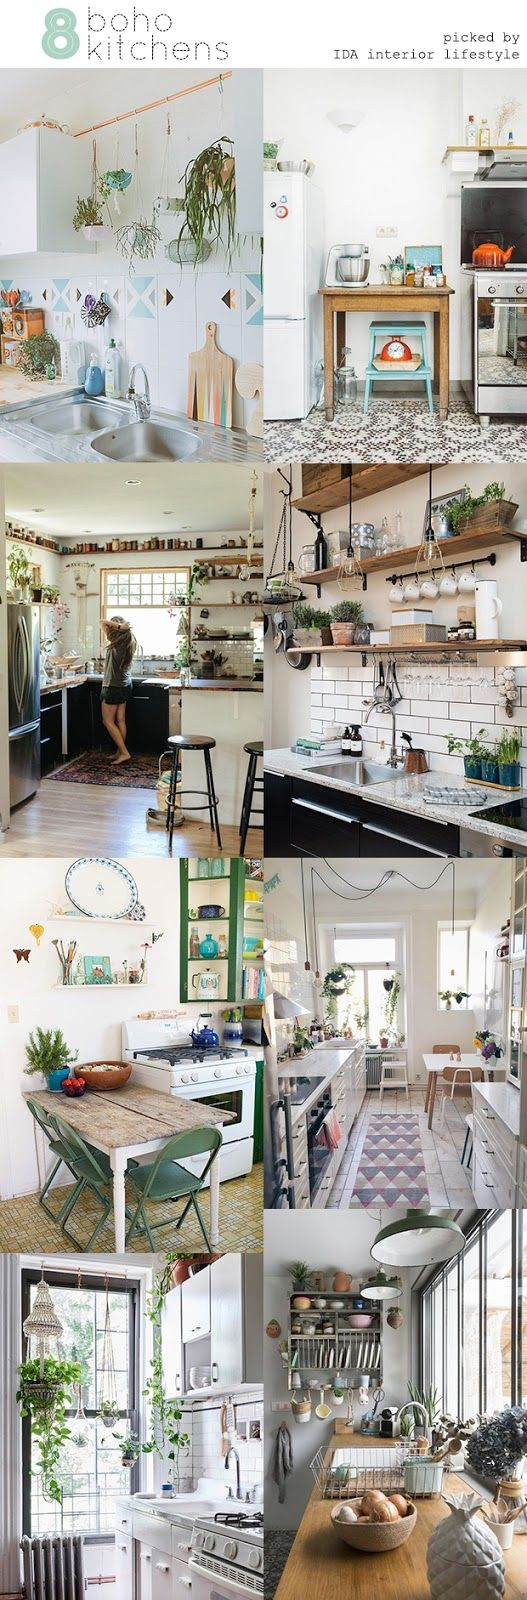 IDA interior lifestyle: 8 boho kitchens Home & Kitchen - Kitchen & Dining - kitchen decor - http://amzn.to/2leulul